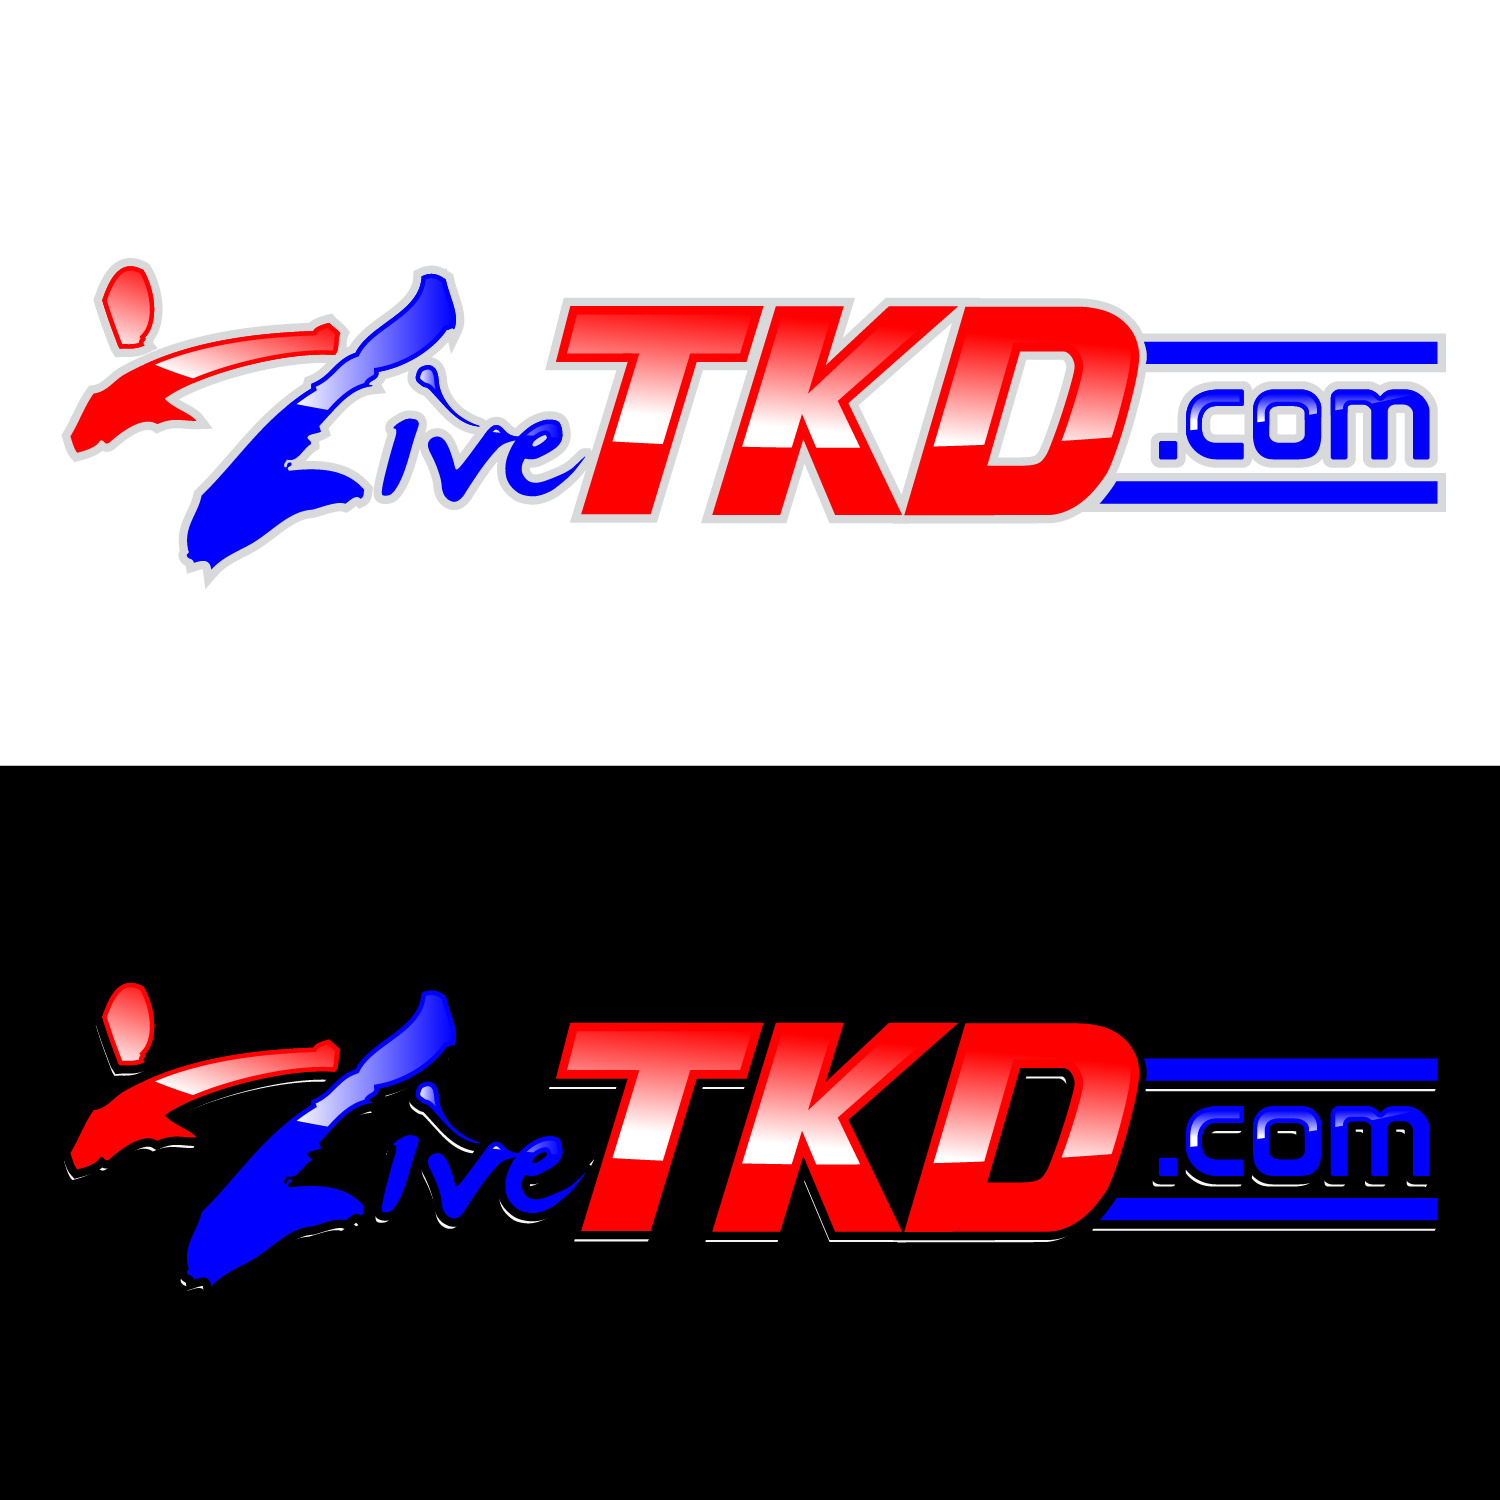 Logo Design by lagalag - Entry No. 176 in the Logo Design Contest New Logo Design for LiveTKD.com.